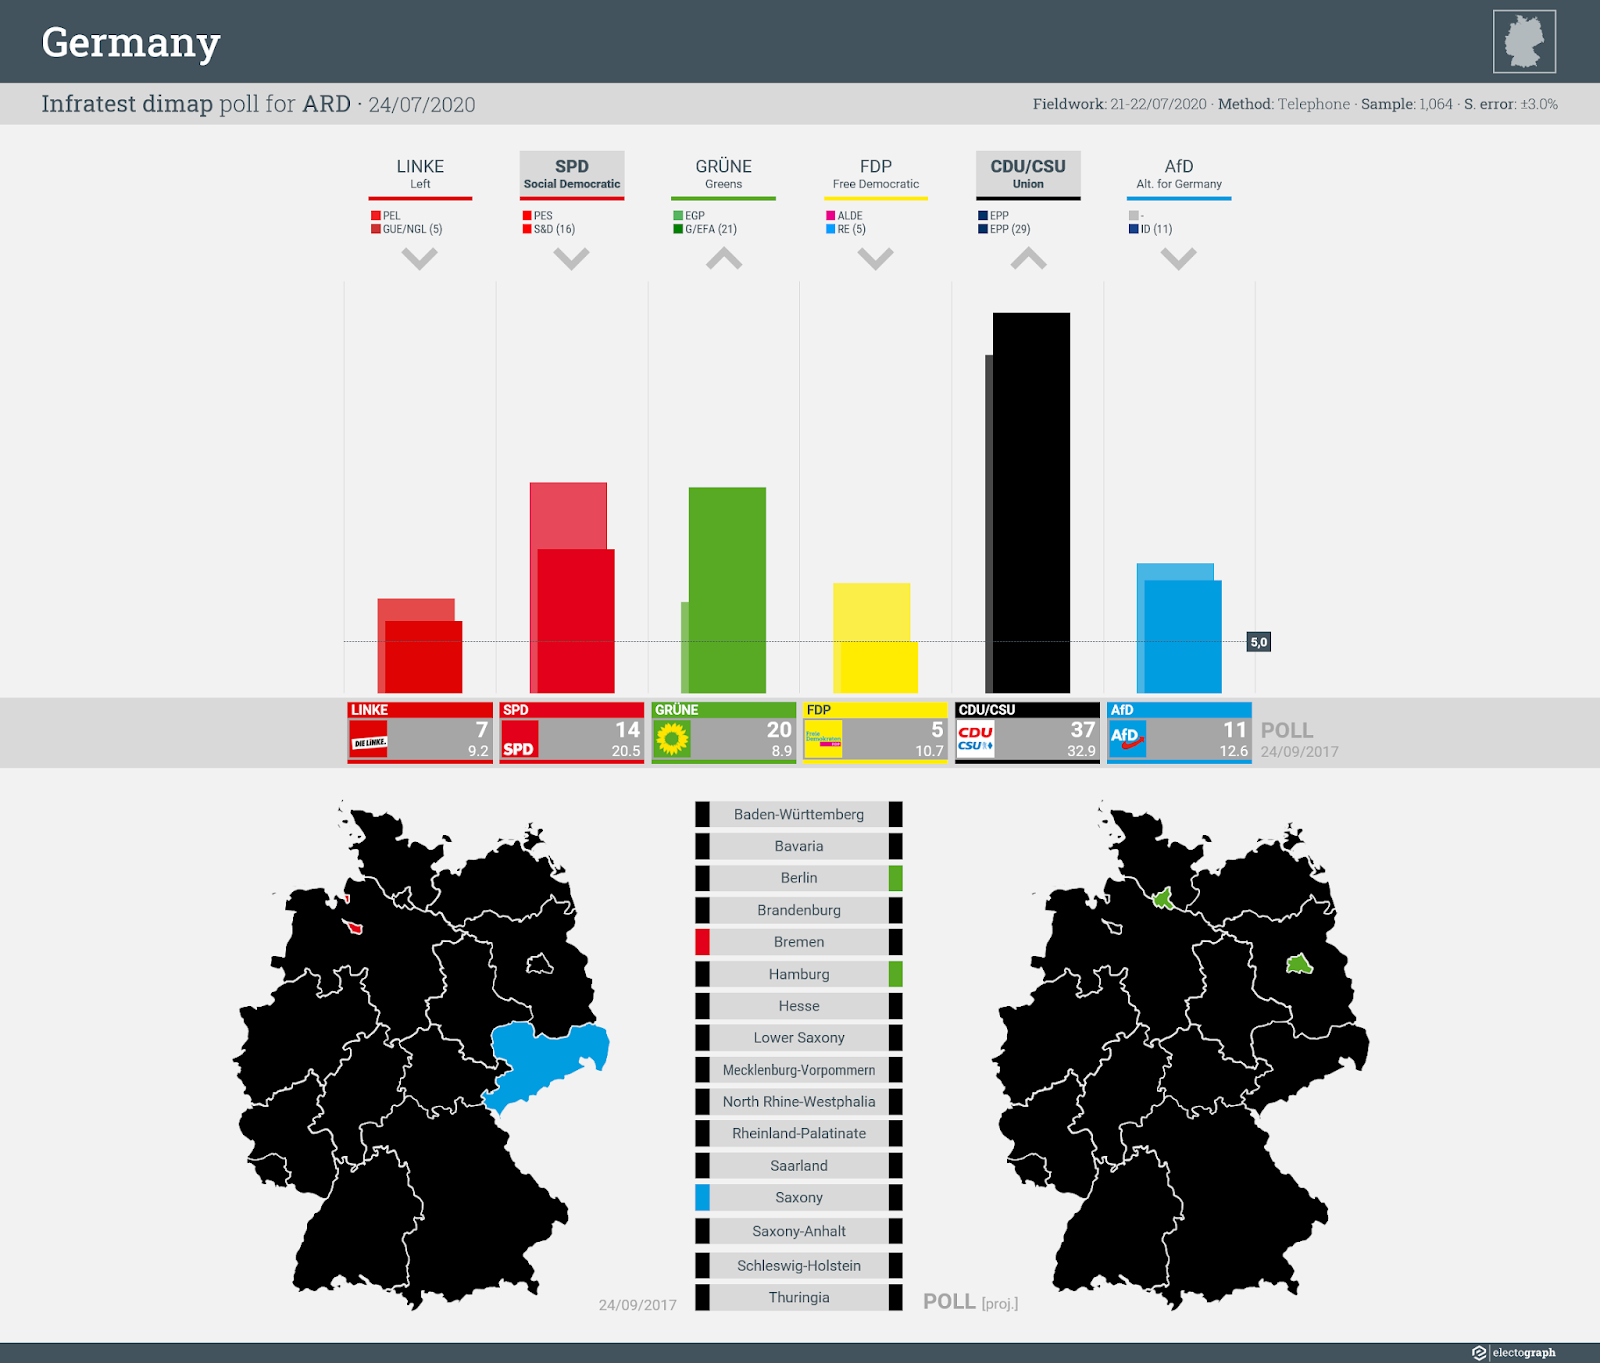 GERMANY: Infratest dimap poll chart for ARD, 24 July 2020